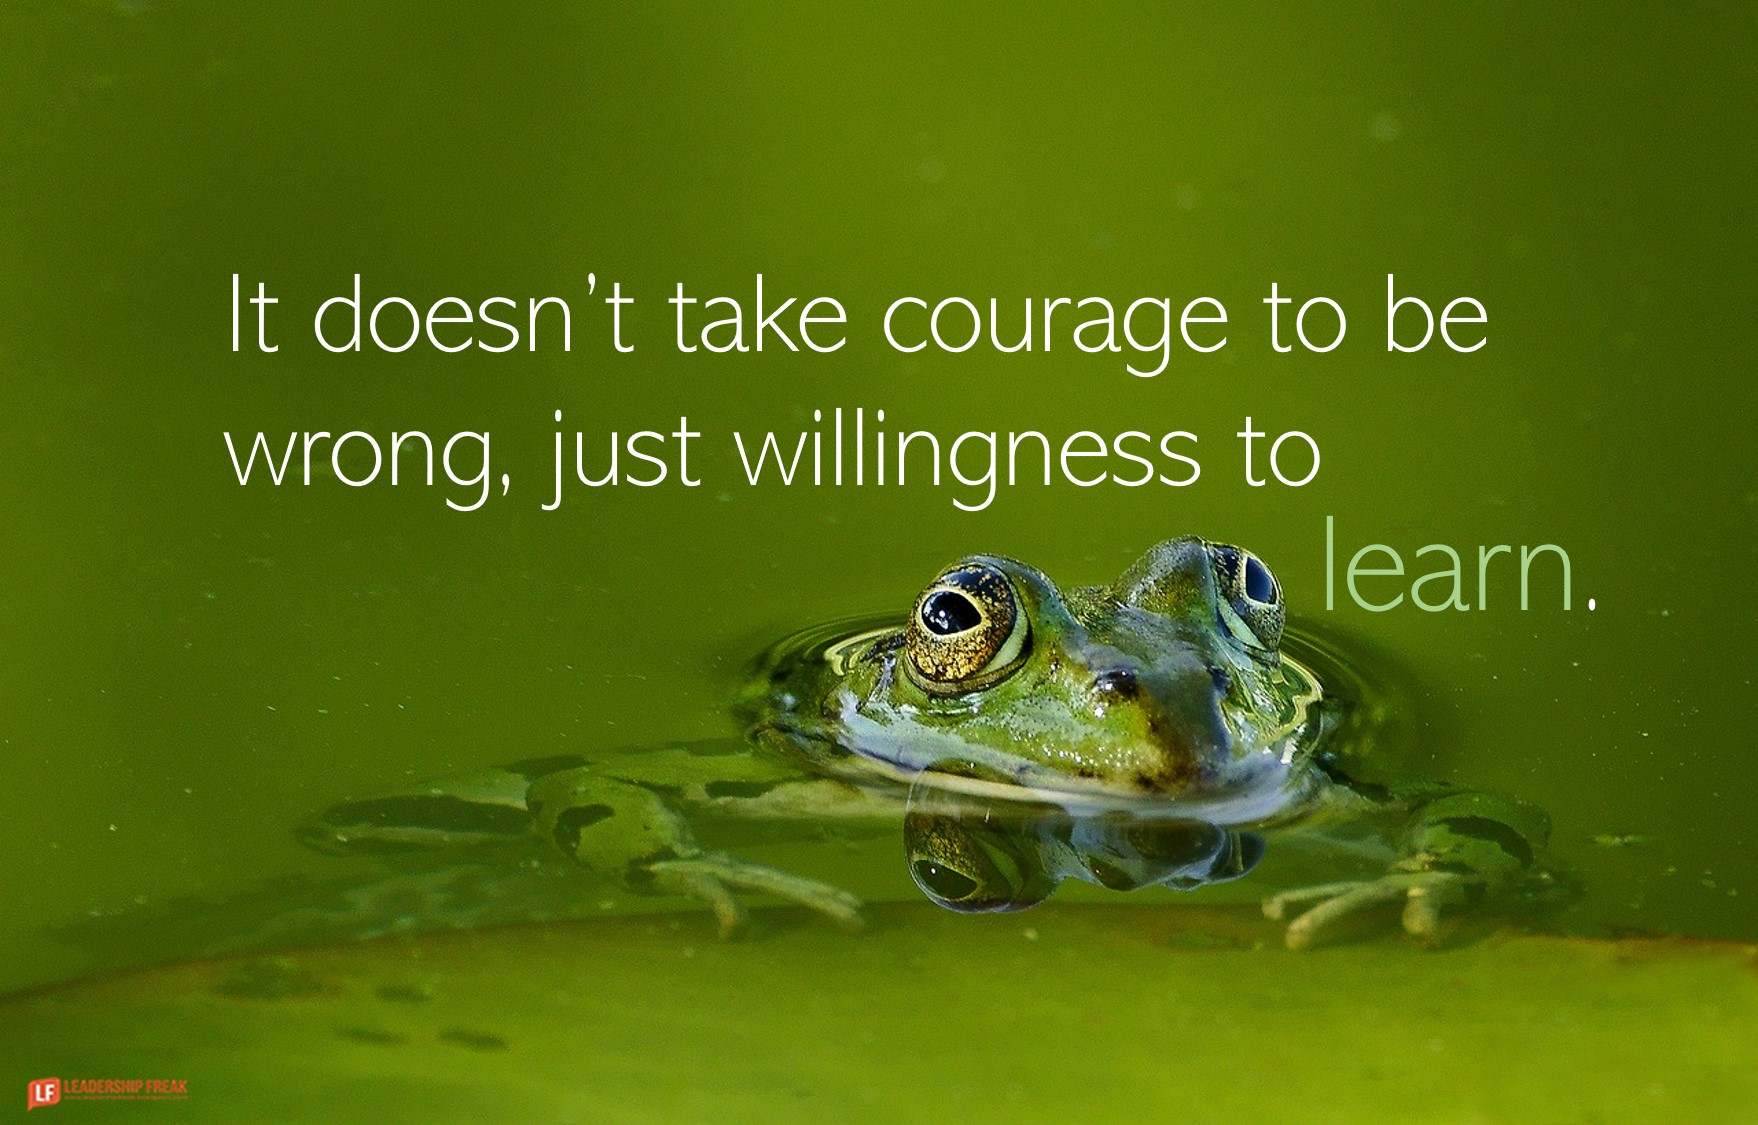 Frog  It doesn't take courage to be wrong, just willingness to learn.